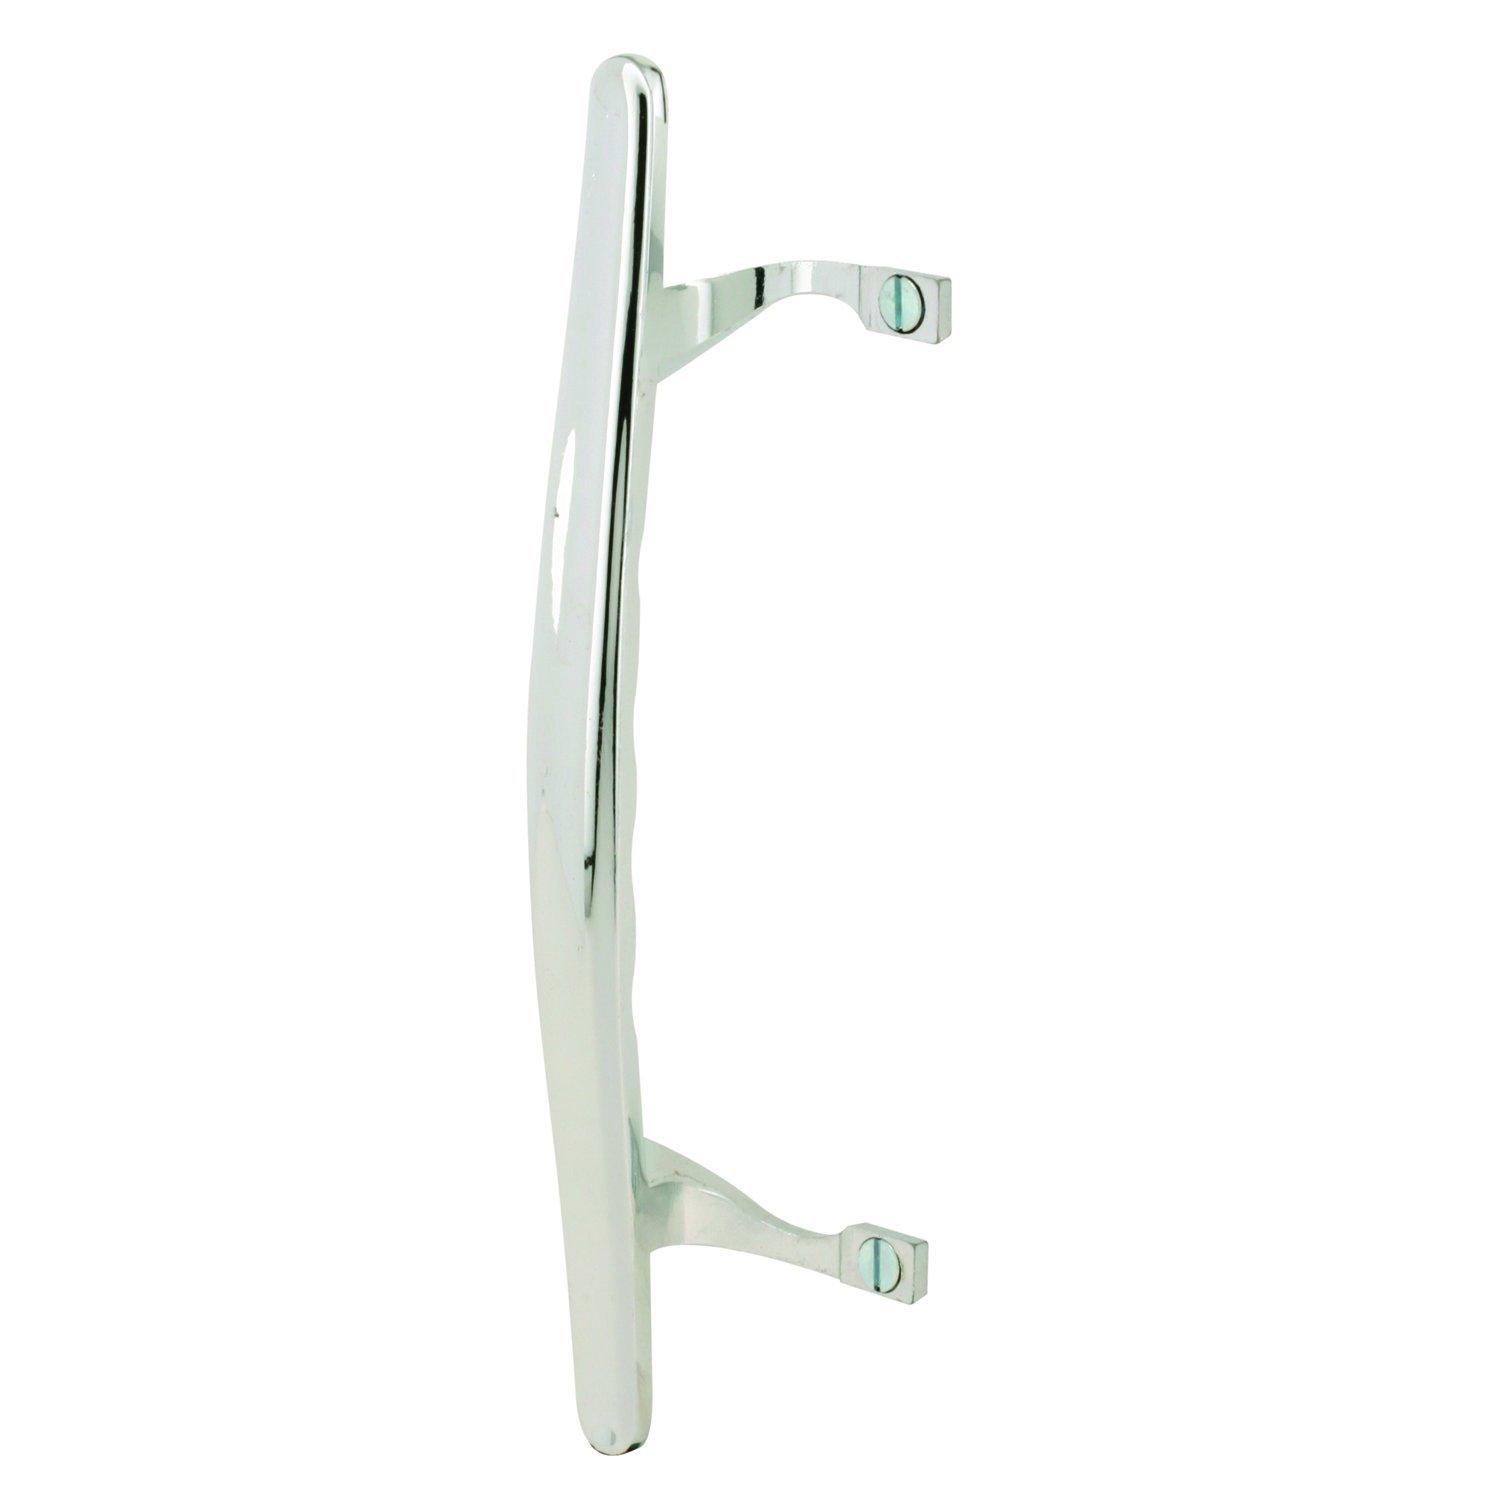 Prime-Line MP1067 Sliding Glass Door Pull Handle Chrome Pack of 1 Prime-Line Products Diecast Construction